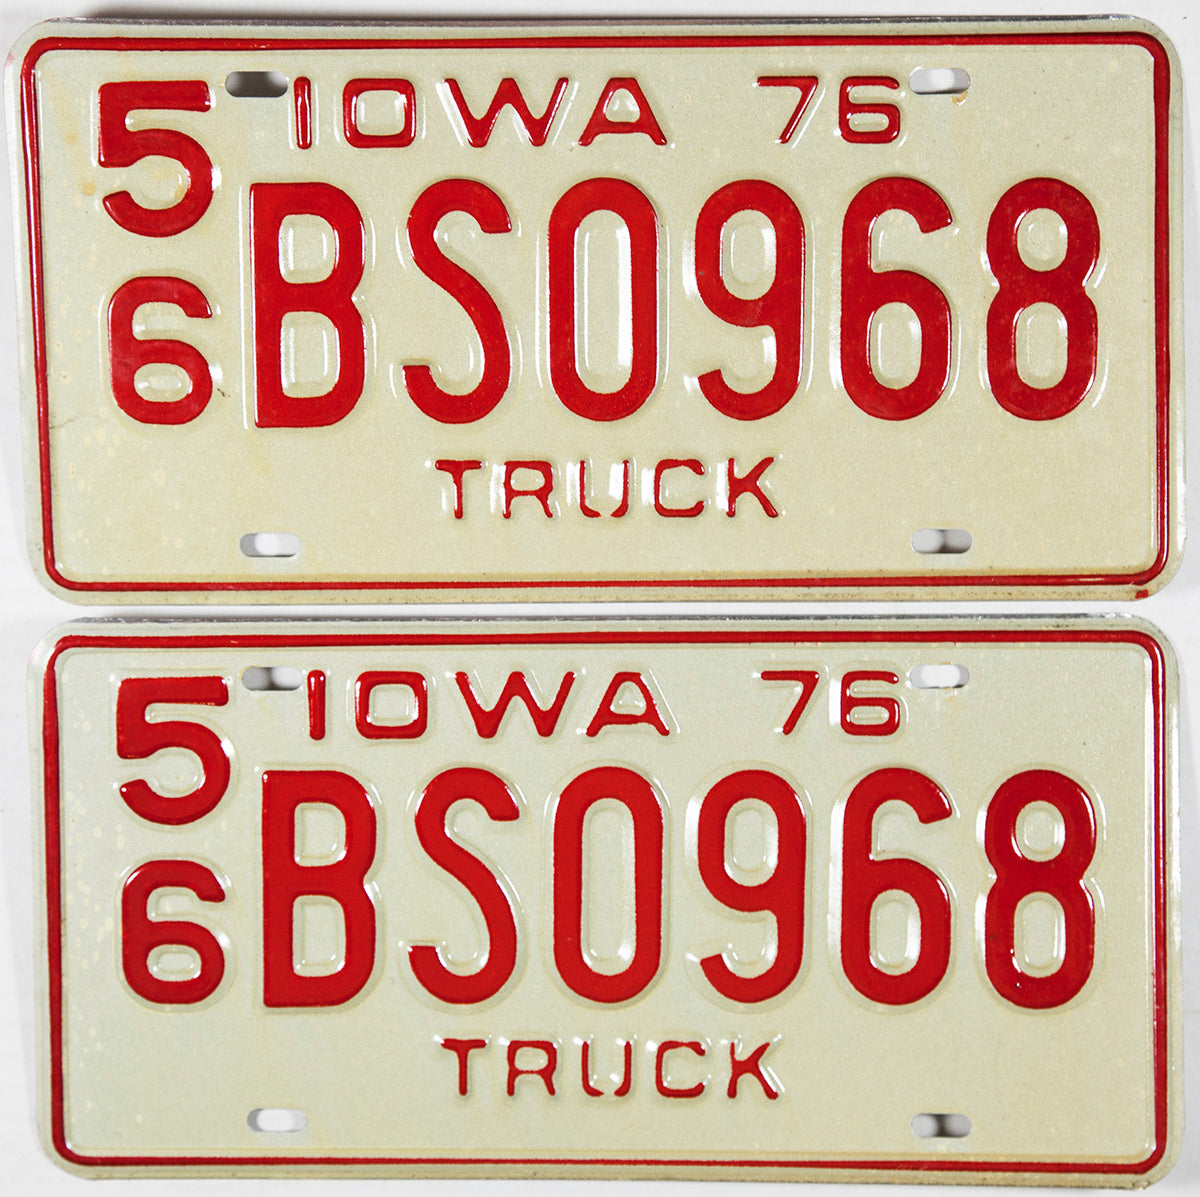 A pair of NOS 1976 Iowa Truck License Plates